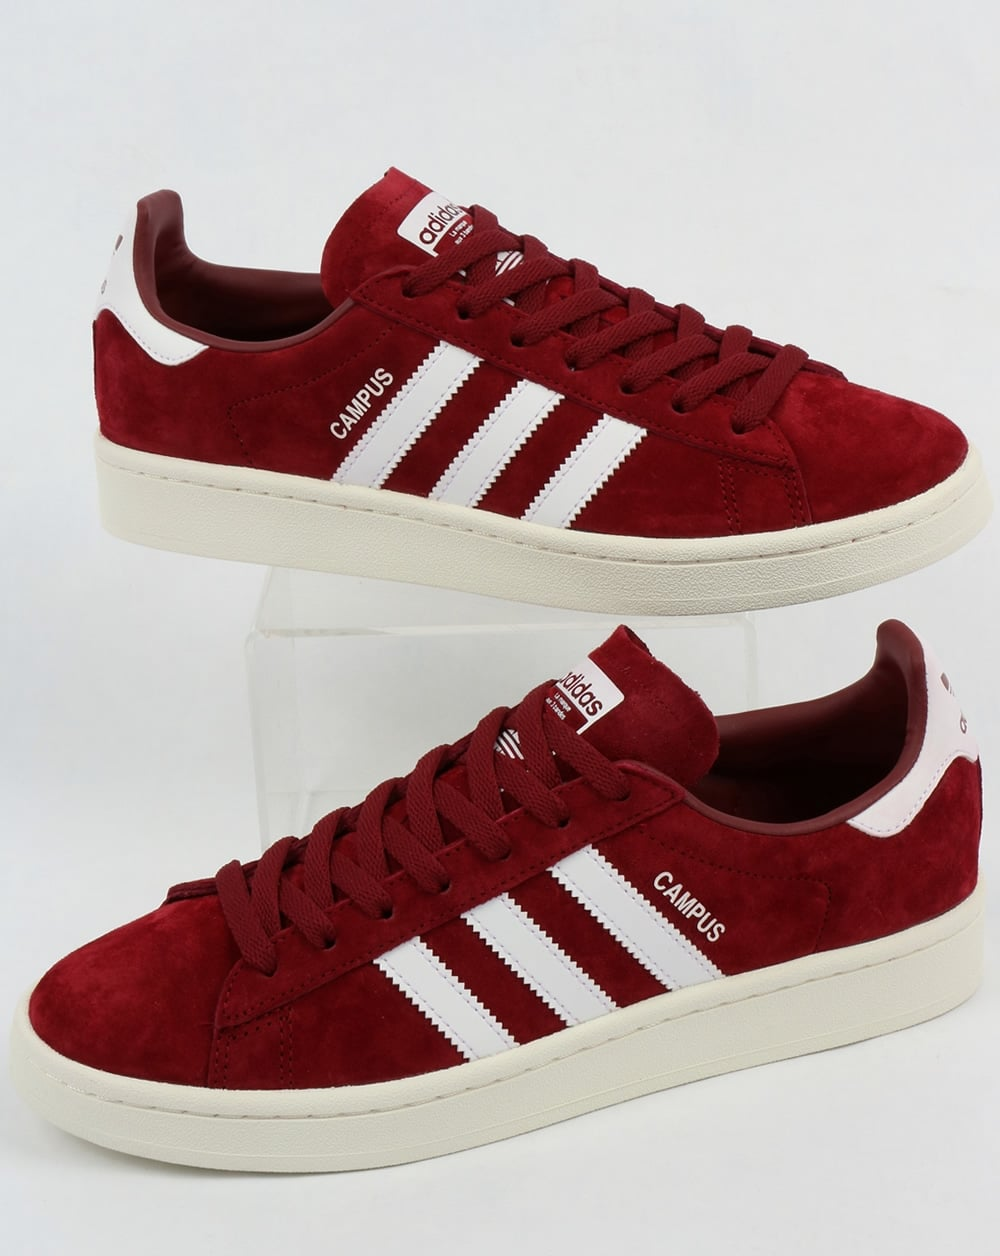 new product 4e4c6 549f9 adidas Trainers Adidas Campus Trainers Burgundy White